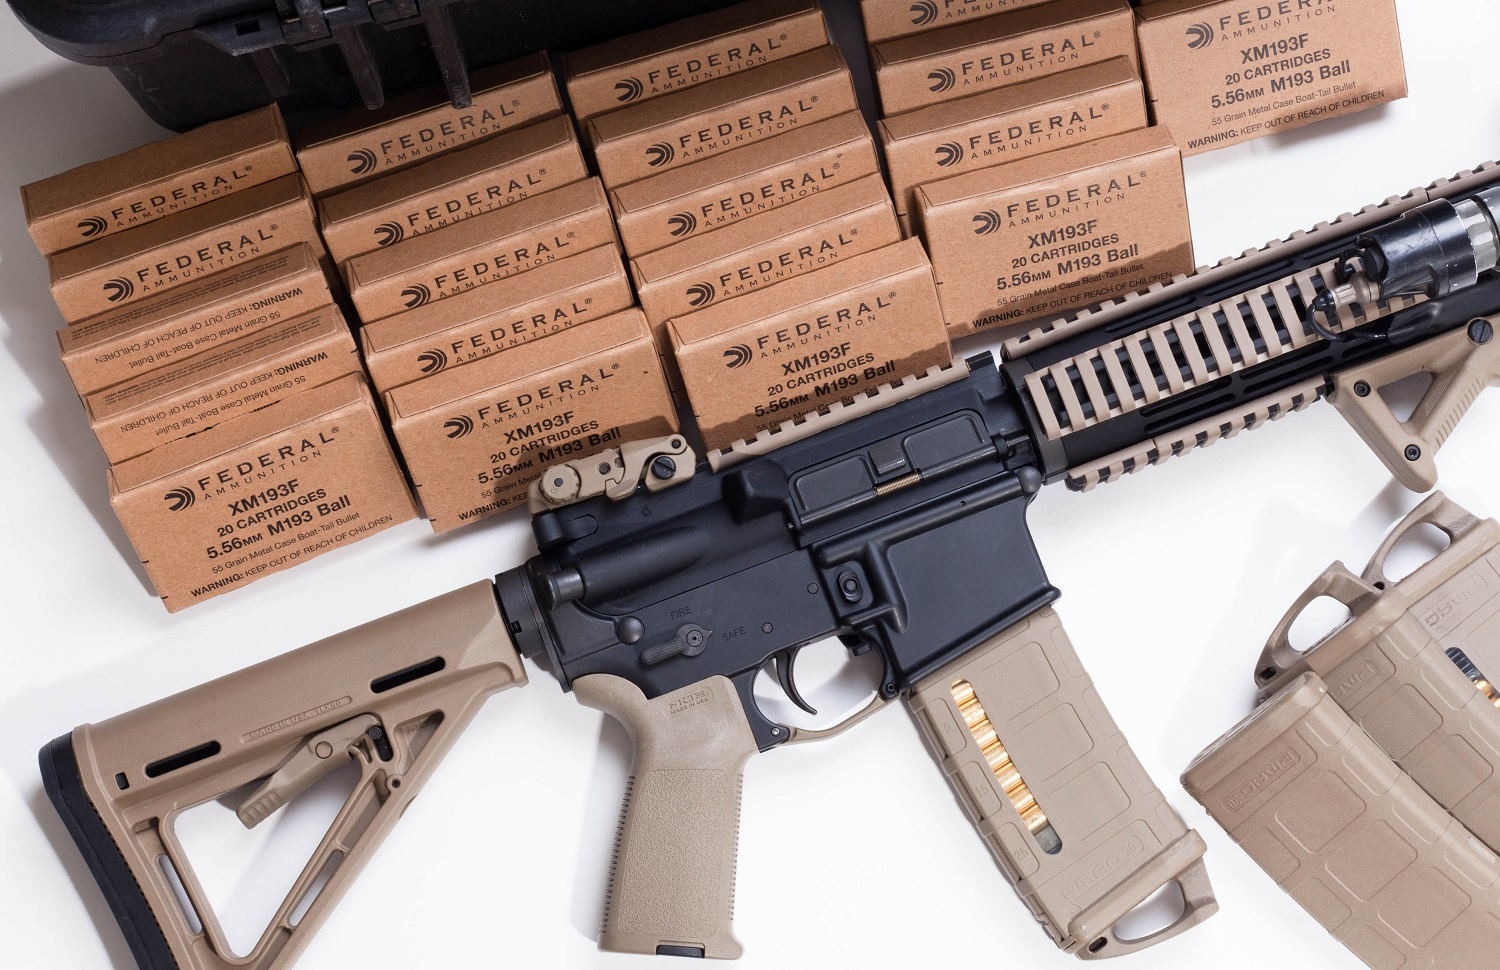 The AR-15 Rifle, DIY Edition: You Can Build One Yourself